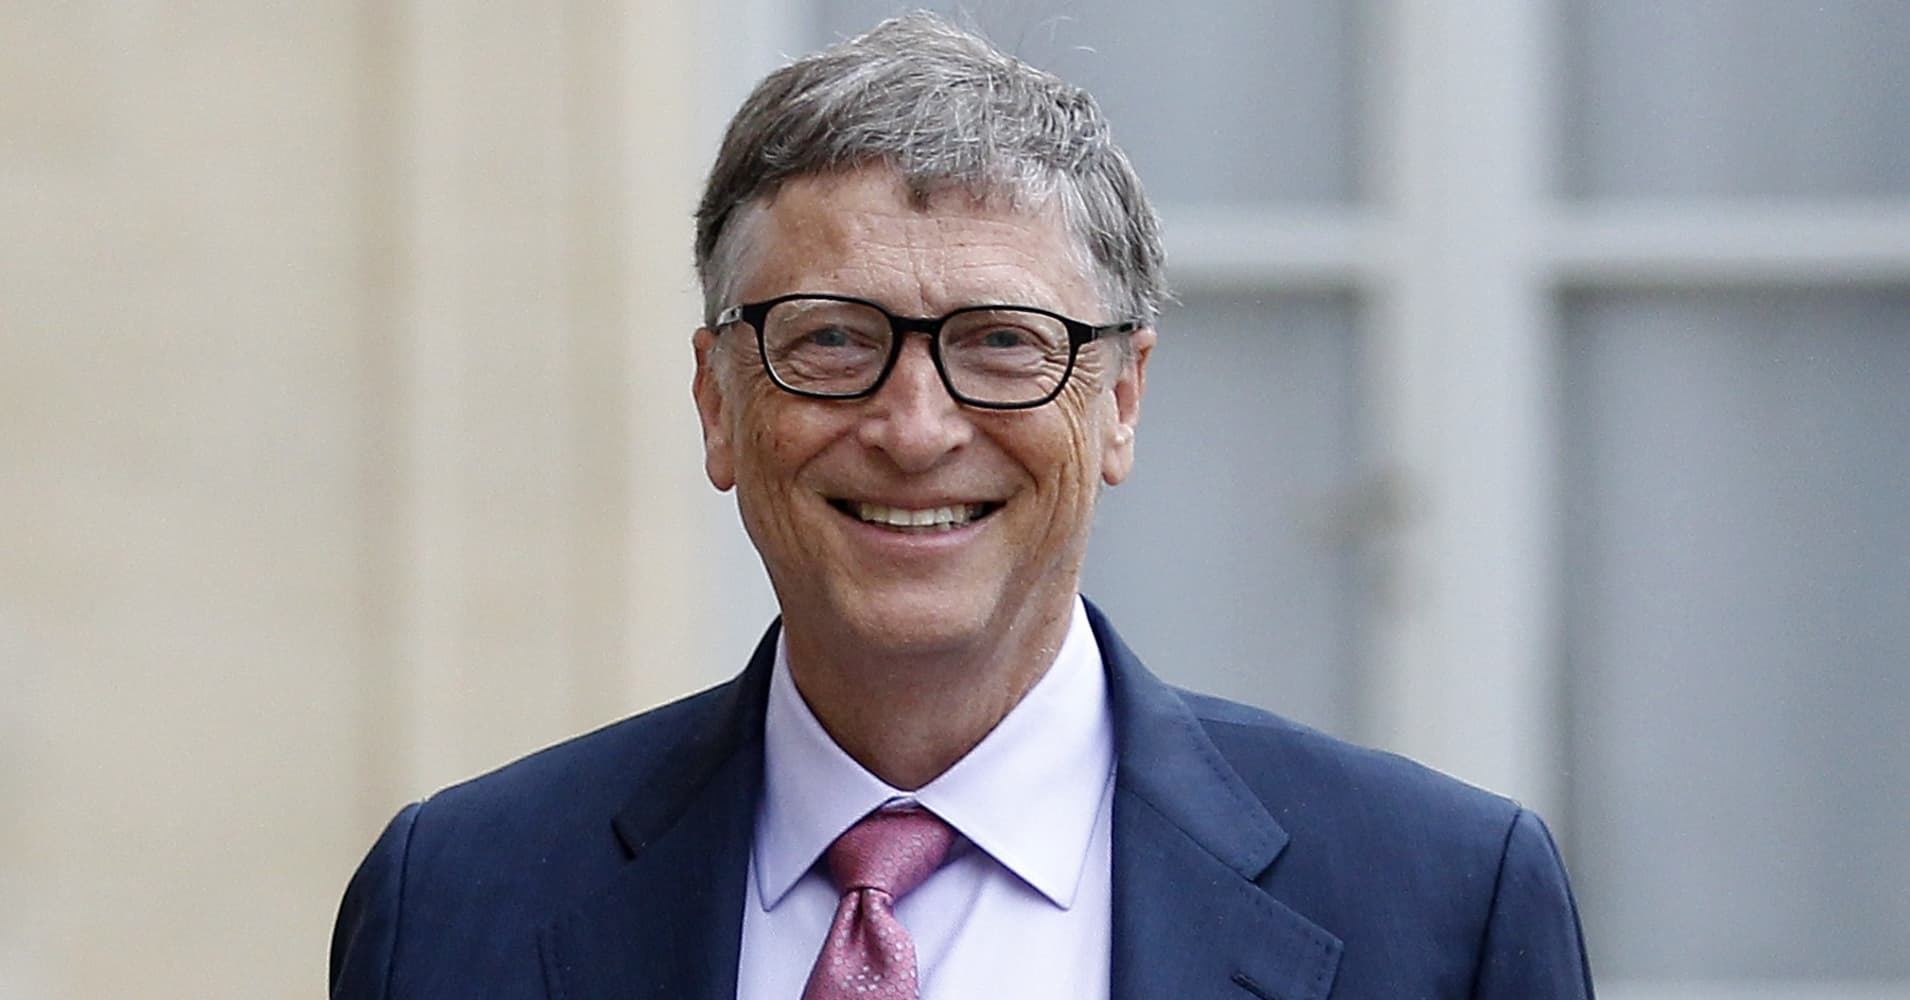 bill gates job stealing robots should pay income taxes